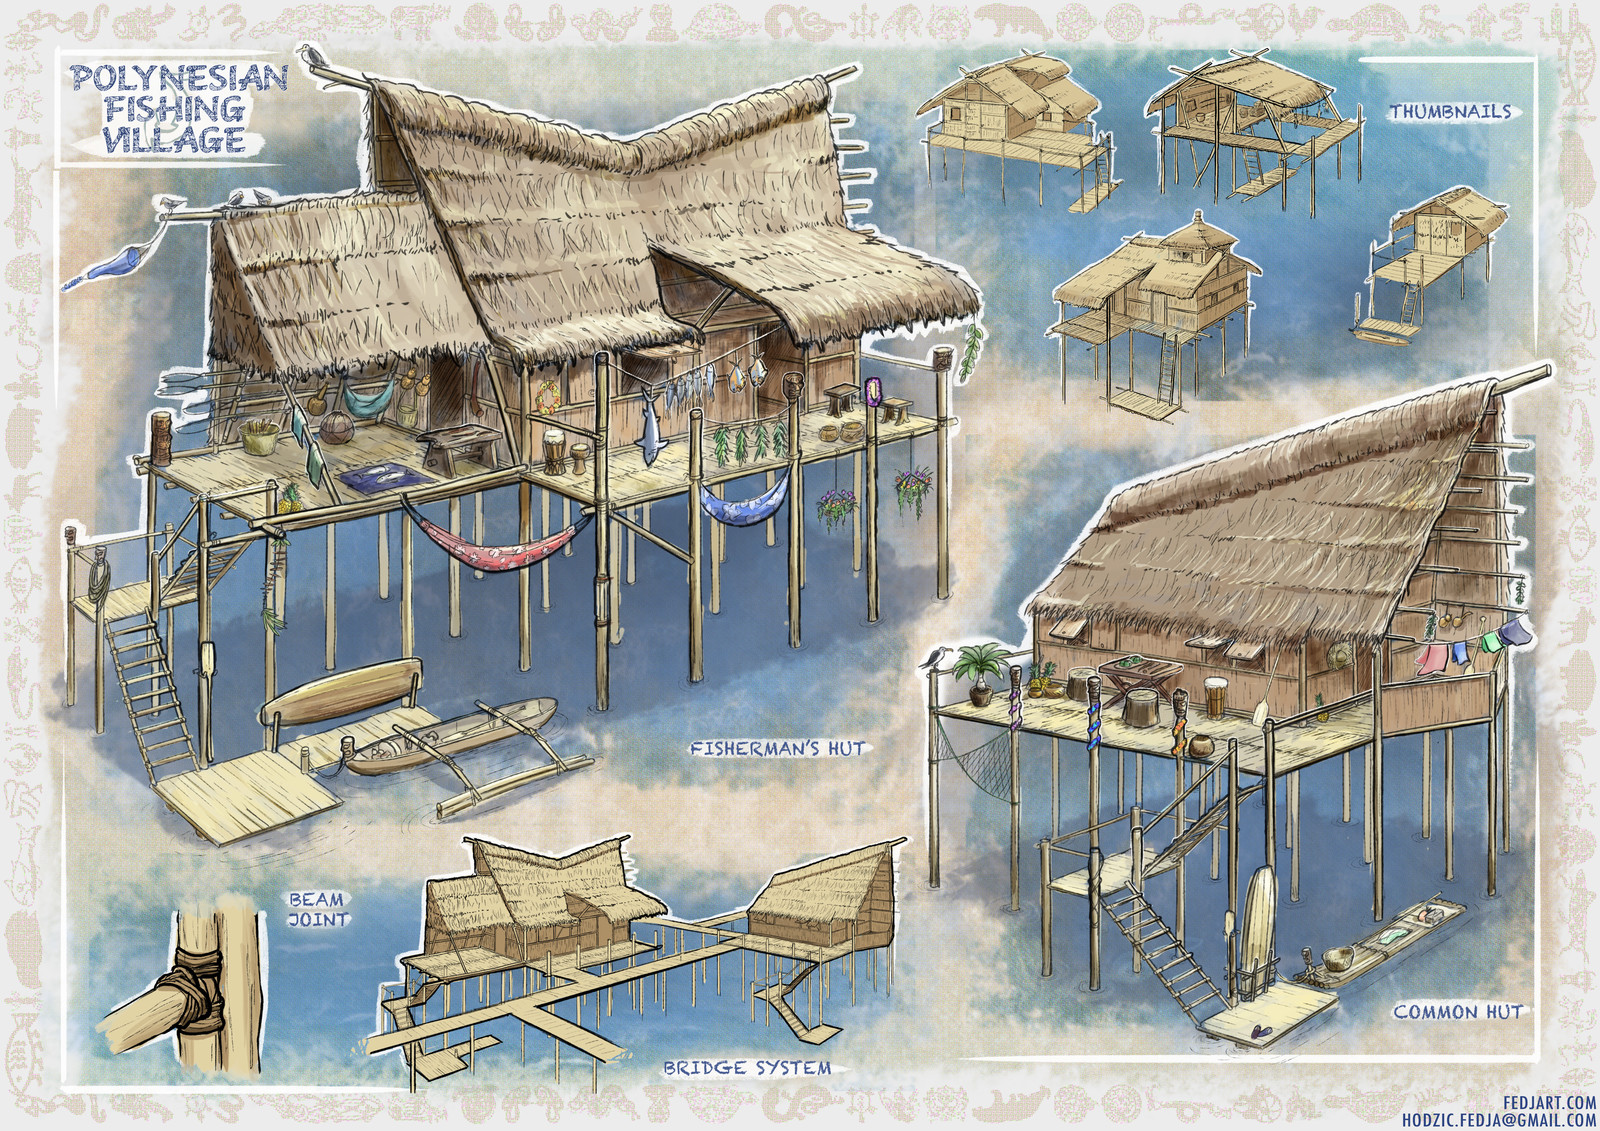 Polynesian Fishing Village